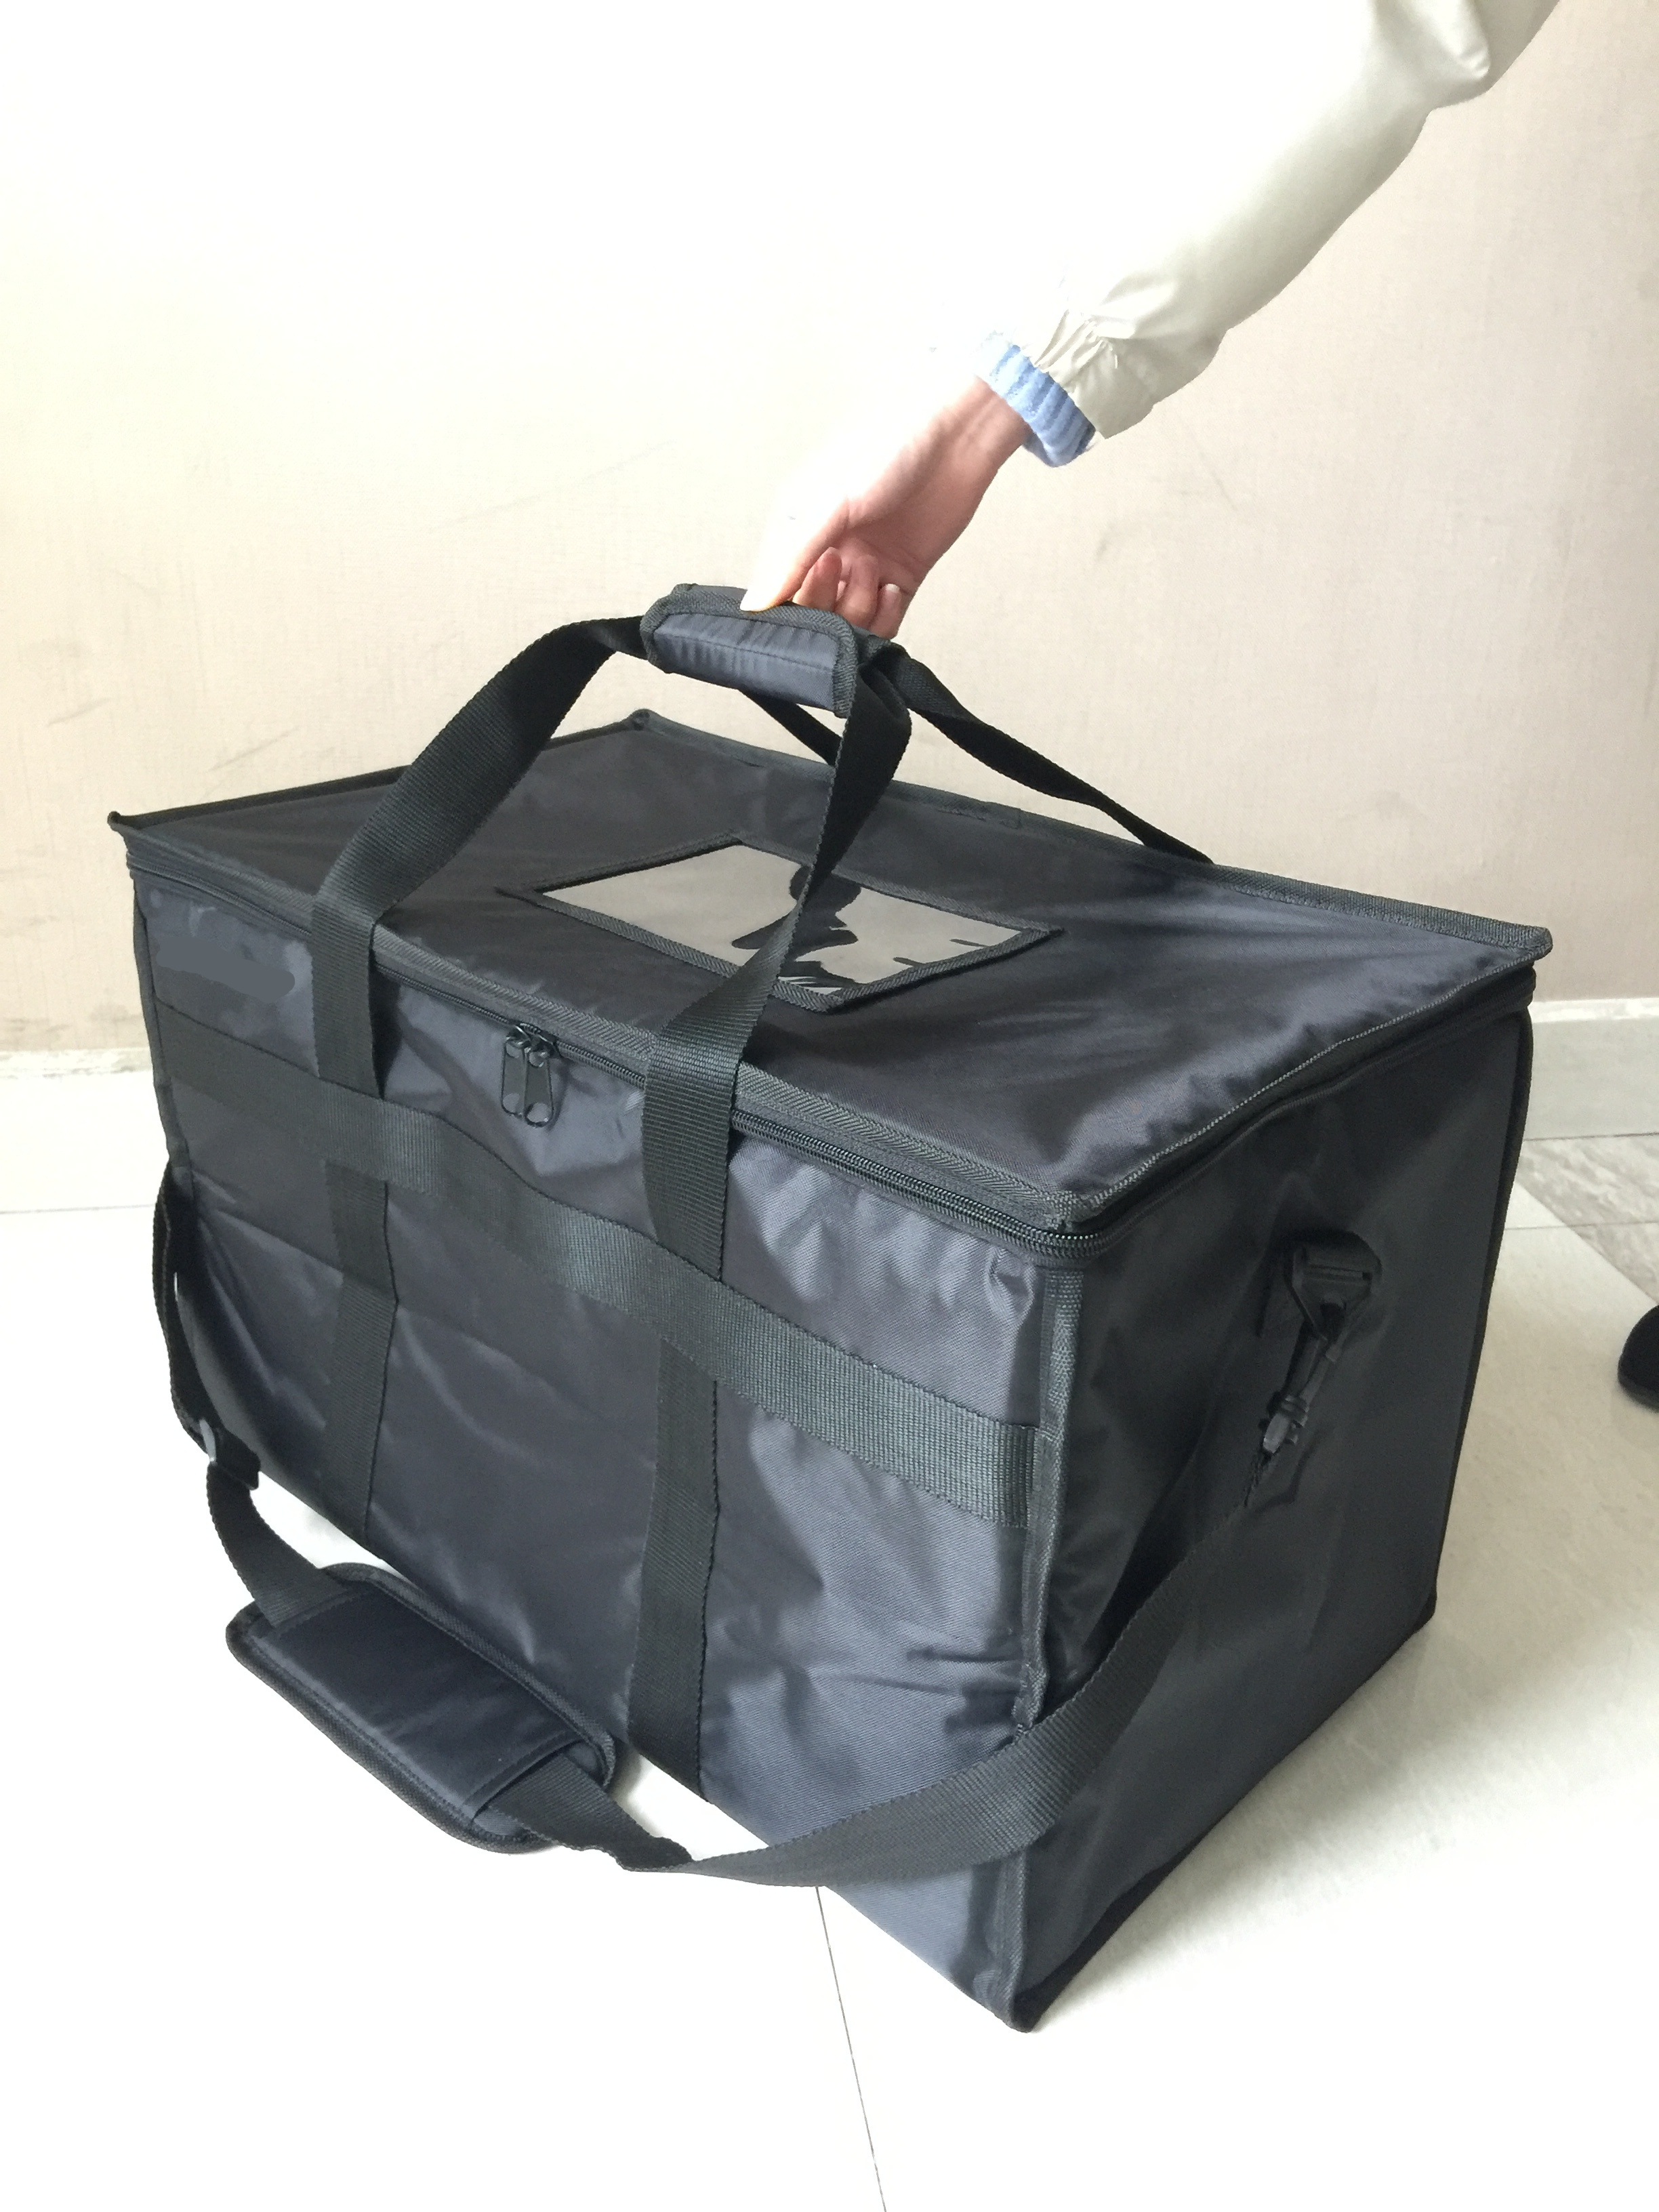 2020 Good Quality Keep Temperature Inside Polyester Insulated Food Delivery Bag with Removable Padded Divider Compartments